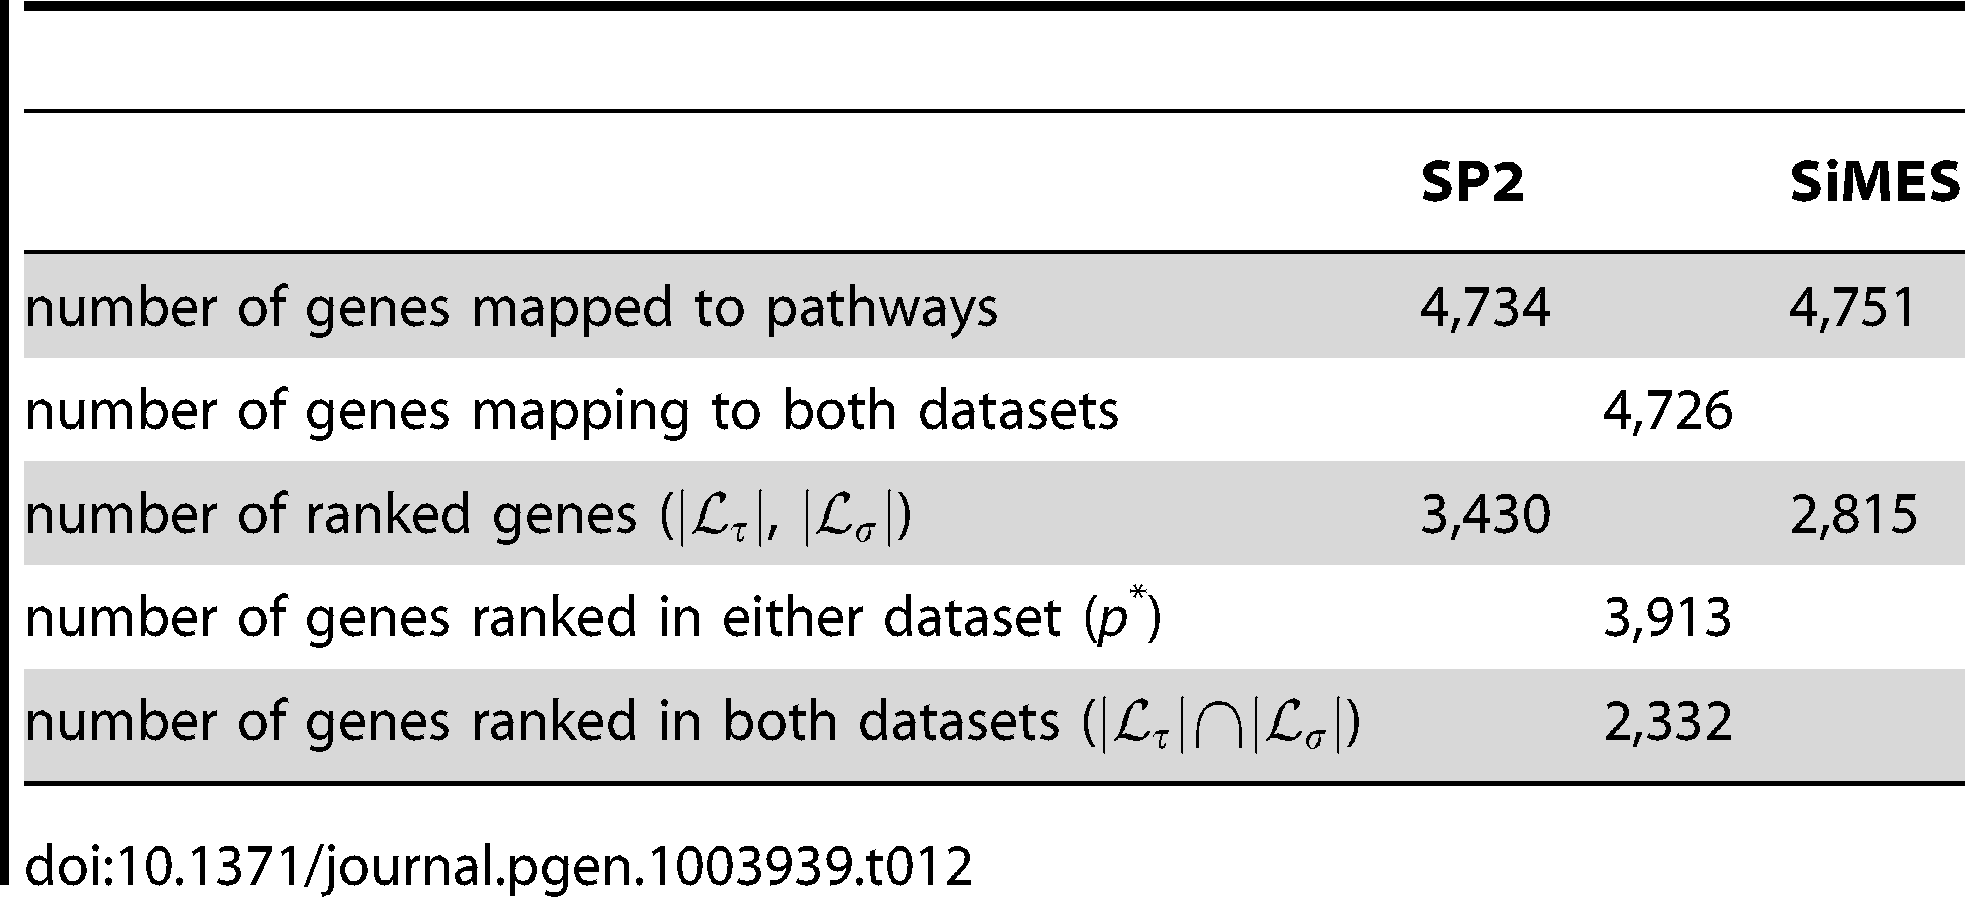 Summary of genes analysed and ranked in SP2 and SiMES datasets.